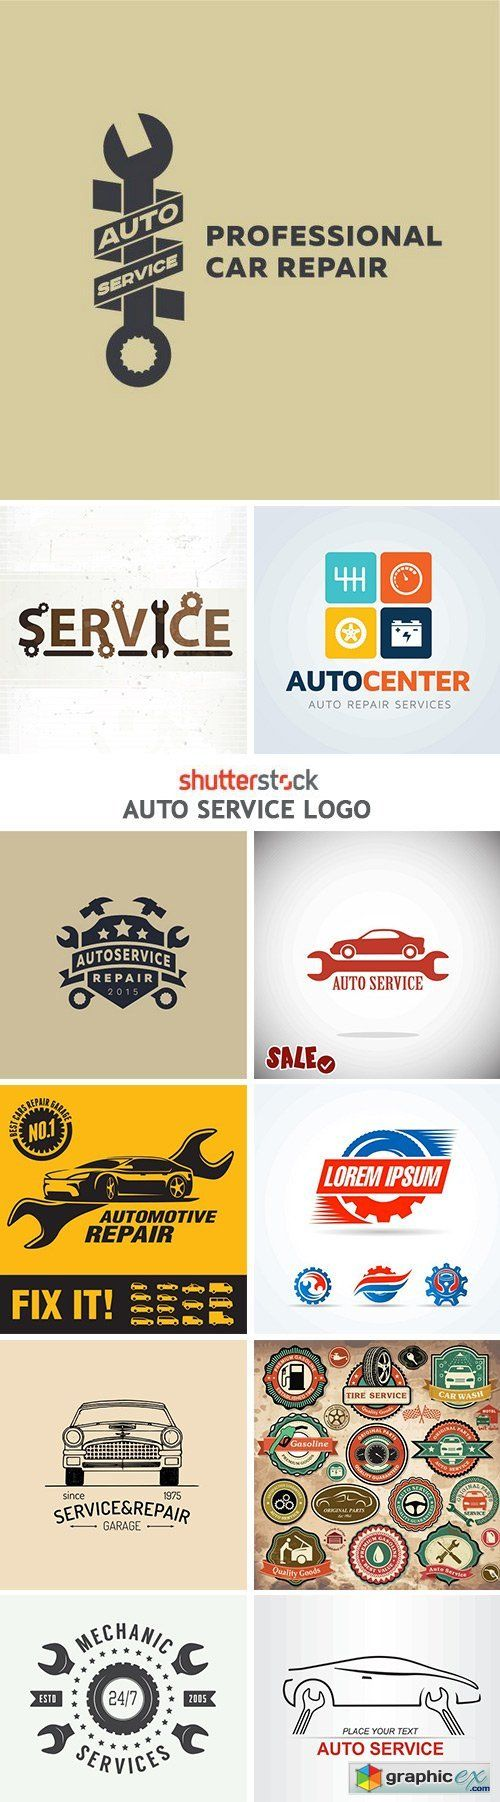 Auto repair shops near me and reviews - Stock Vector Auto Service Logo 25 Eps In Original Filenames